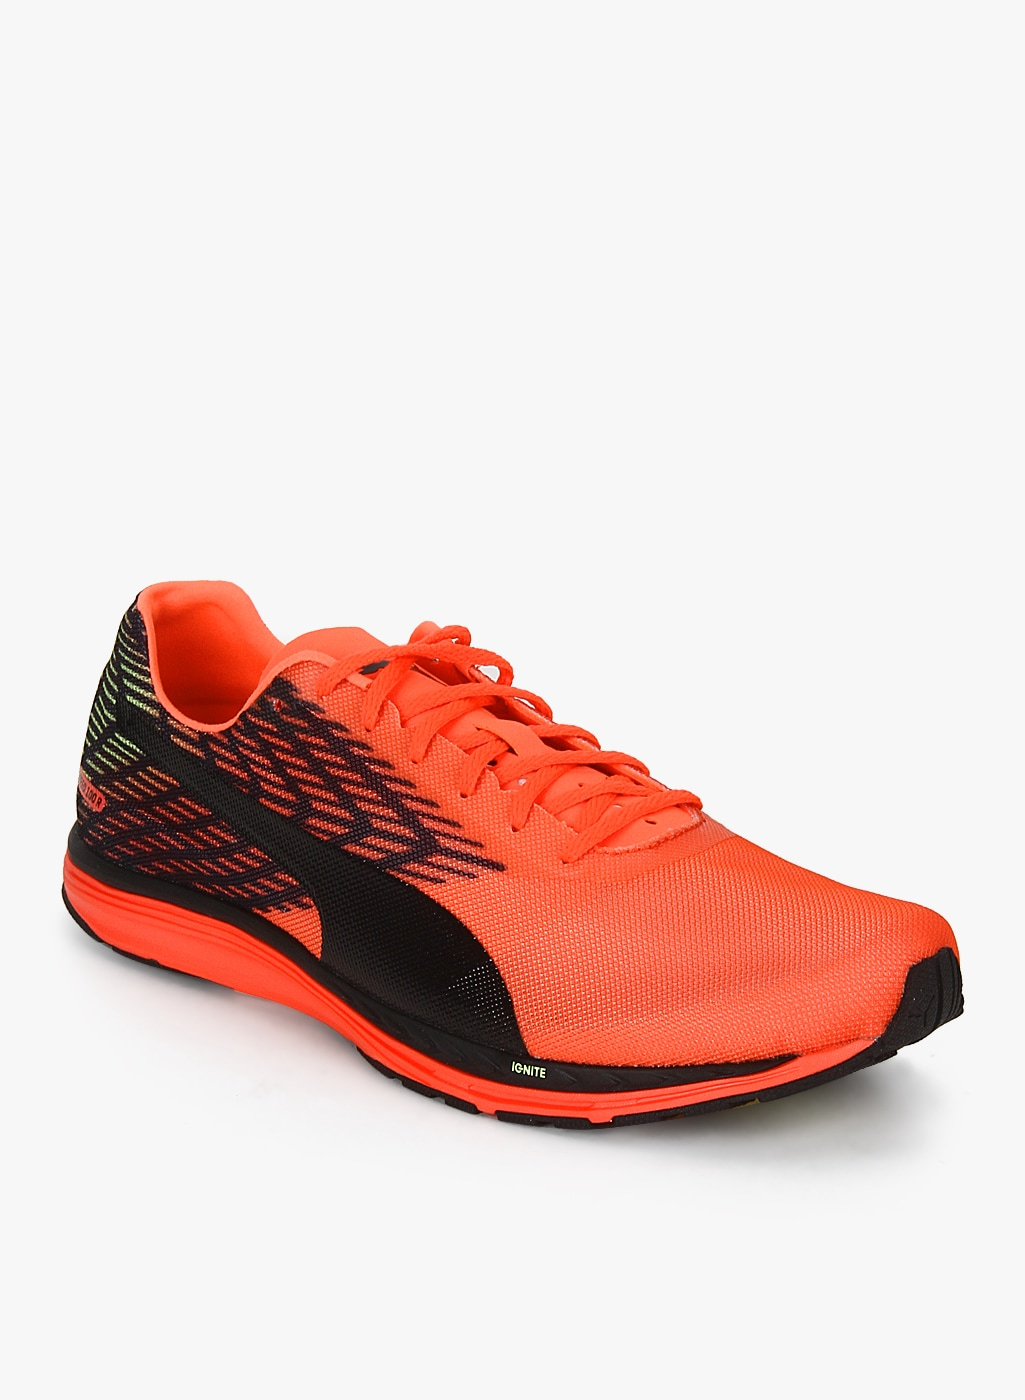 fd5997d0a67 Puma Speed 100 R Ignite 2 Orange Running Shoes for Men online in ...